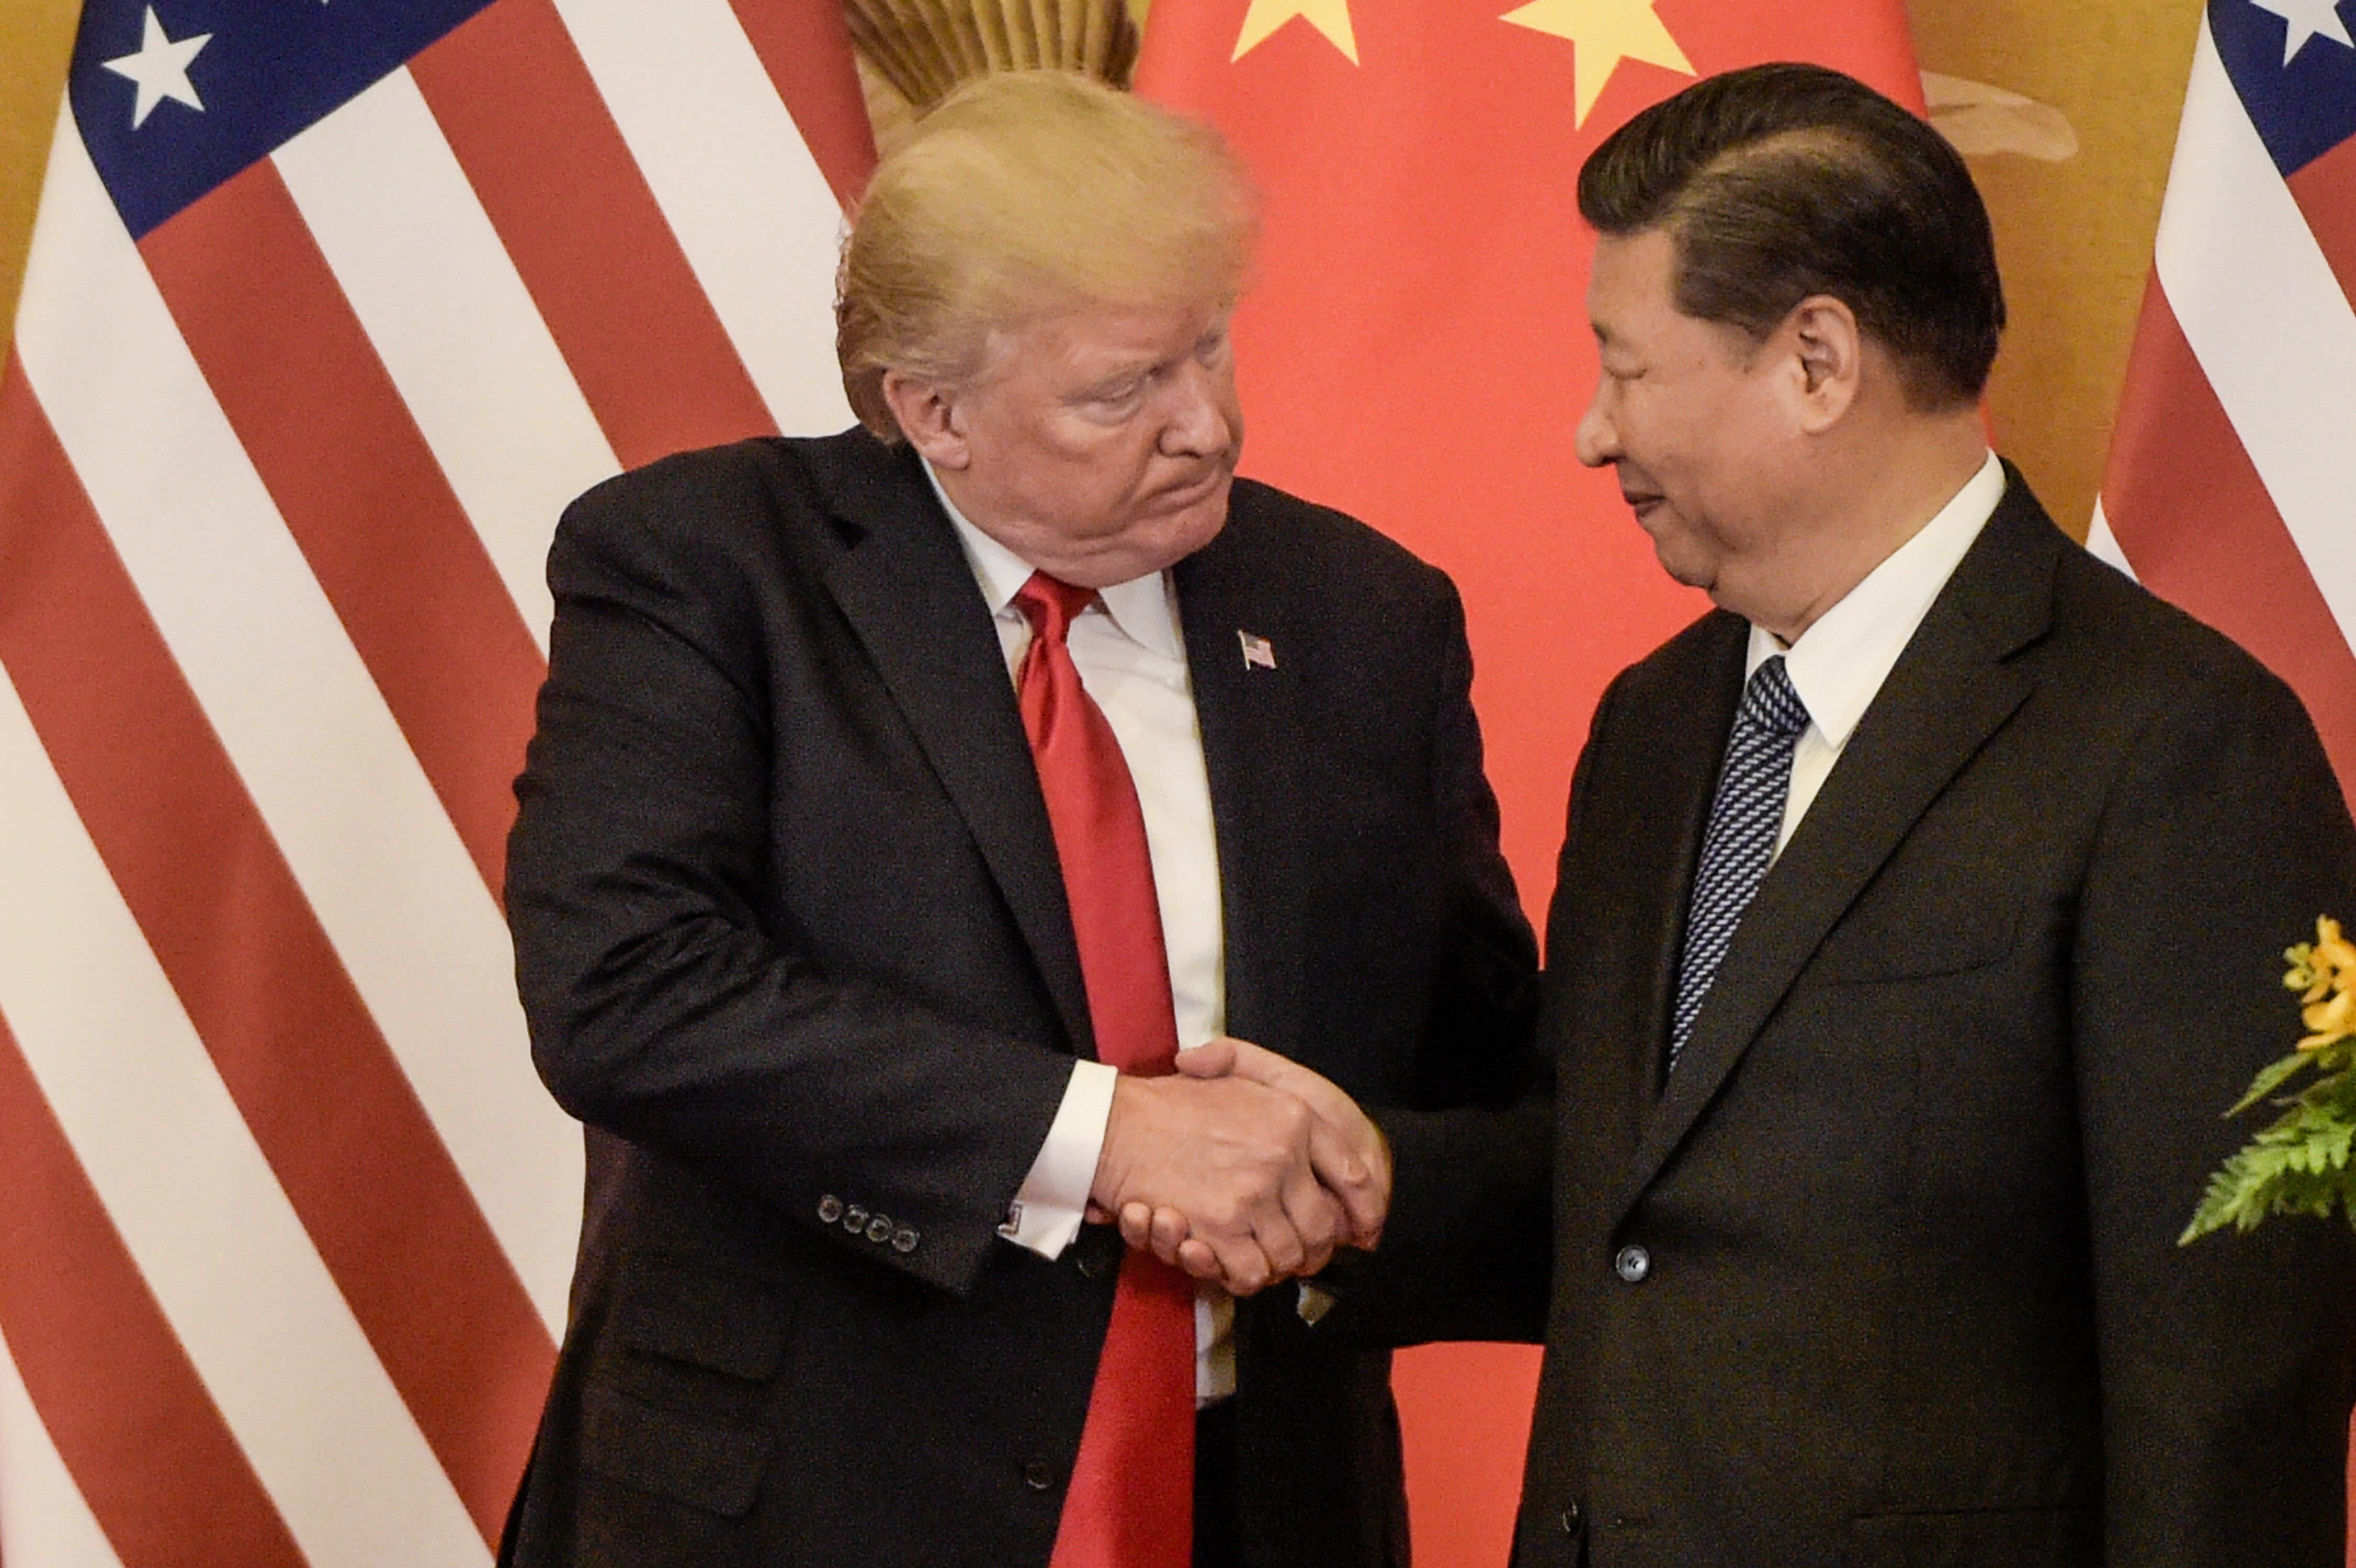 US President Donald Trump (L) shakes hand with China's President Xi Jinping at the end of a press conference at the Great Hall of the People in Beijing on November 9, 2017. (FRED DUFOUR/AFP/Getty Images)